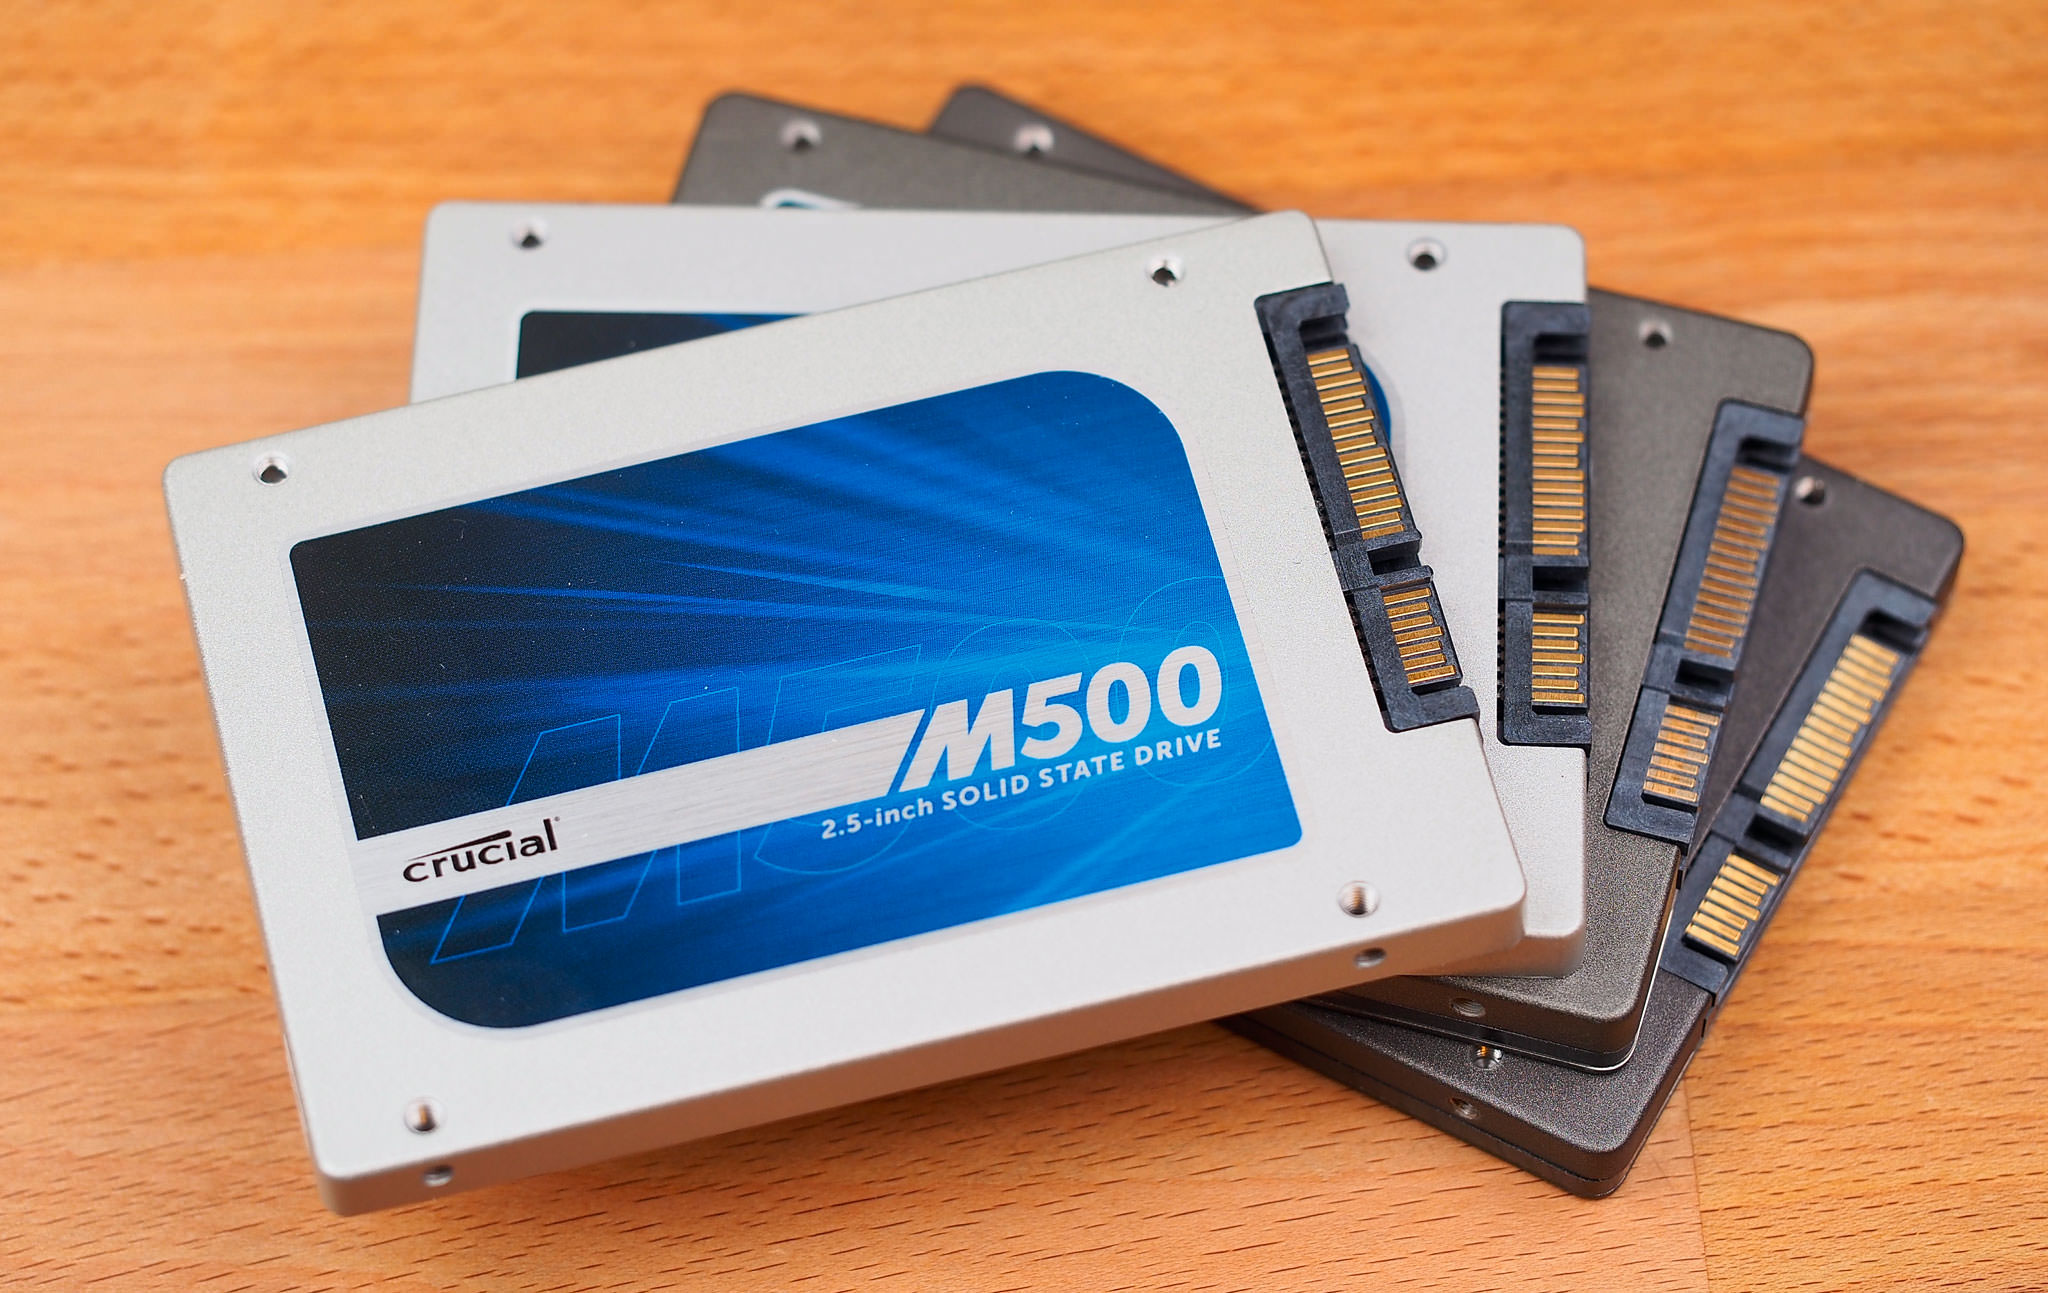 Crucial-M500-SSD-5